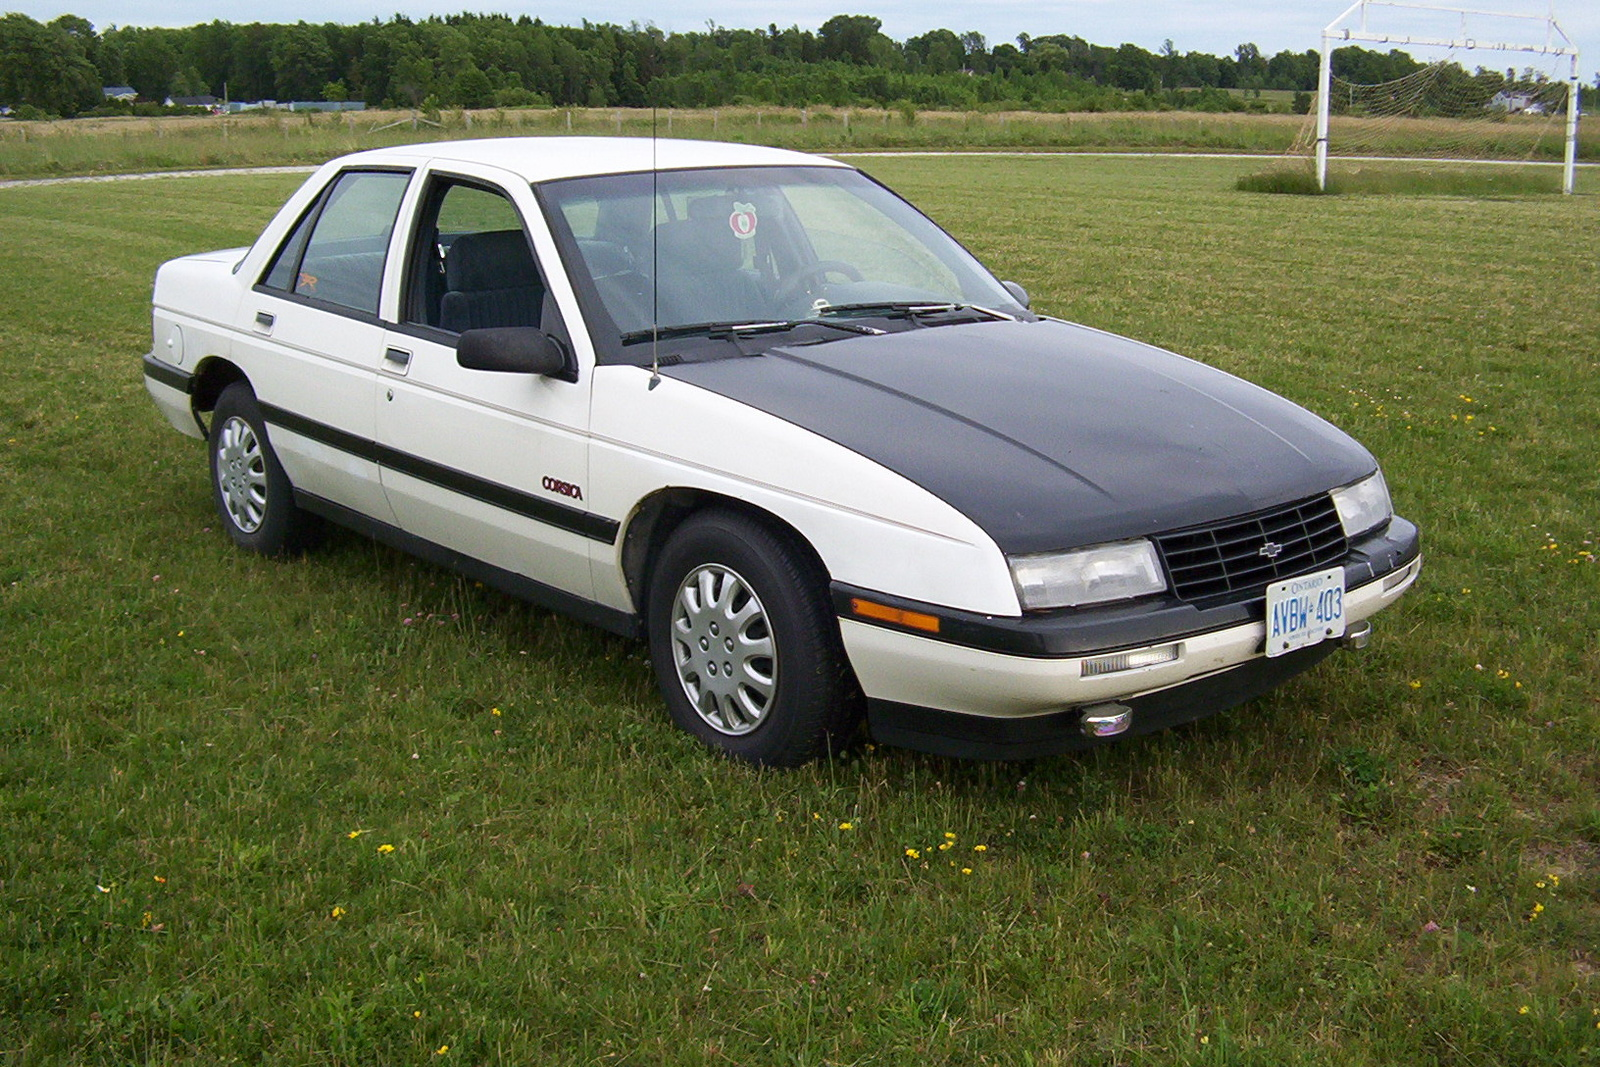 1991 Chevrolet Corsica - Pictures